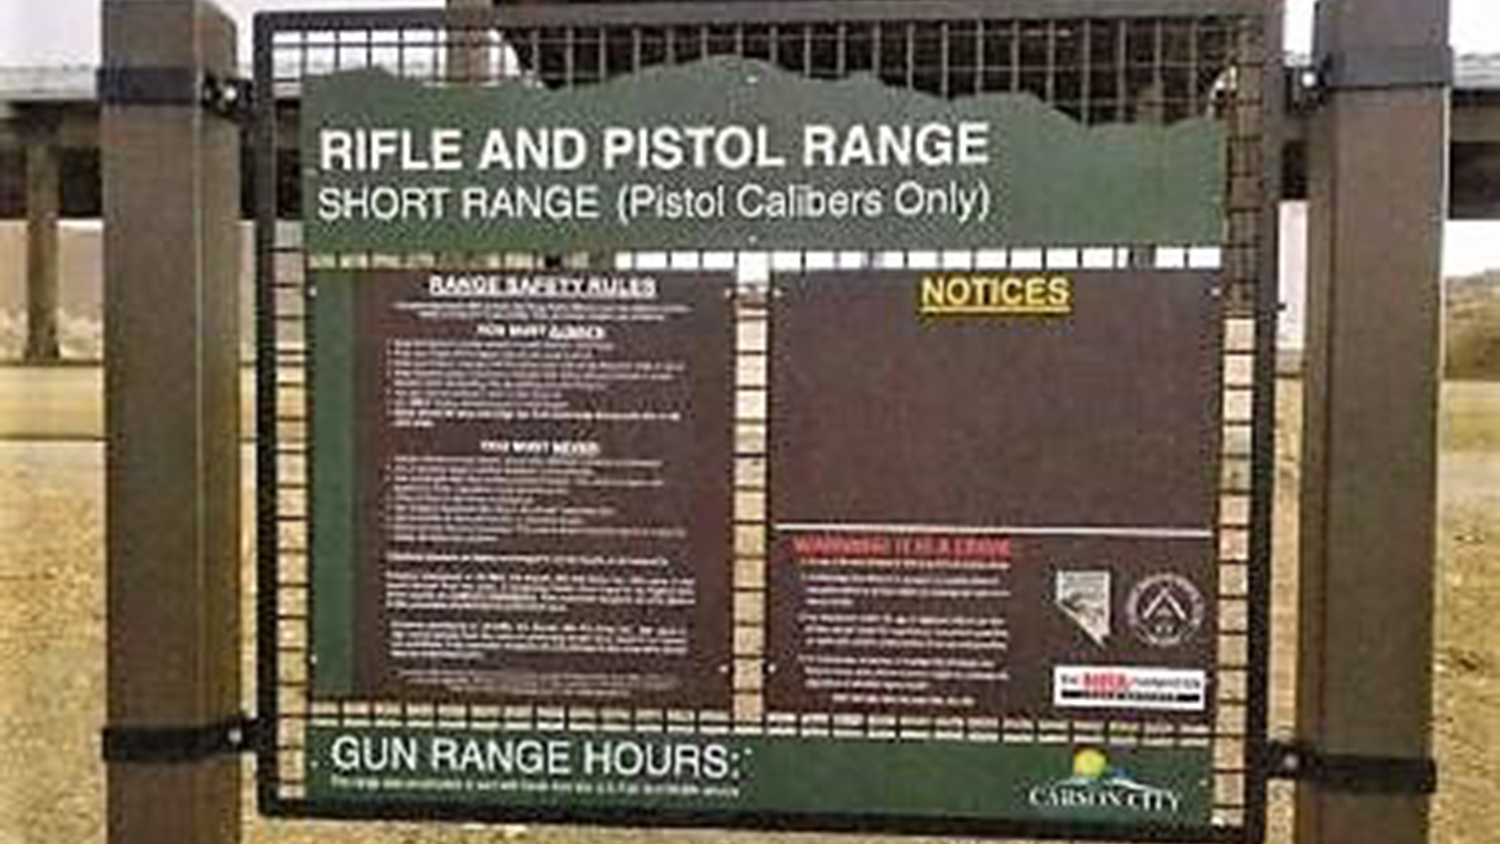 CarsonNow.org: New signage at Carson City Rifle and Pistol Range